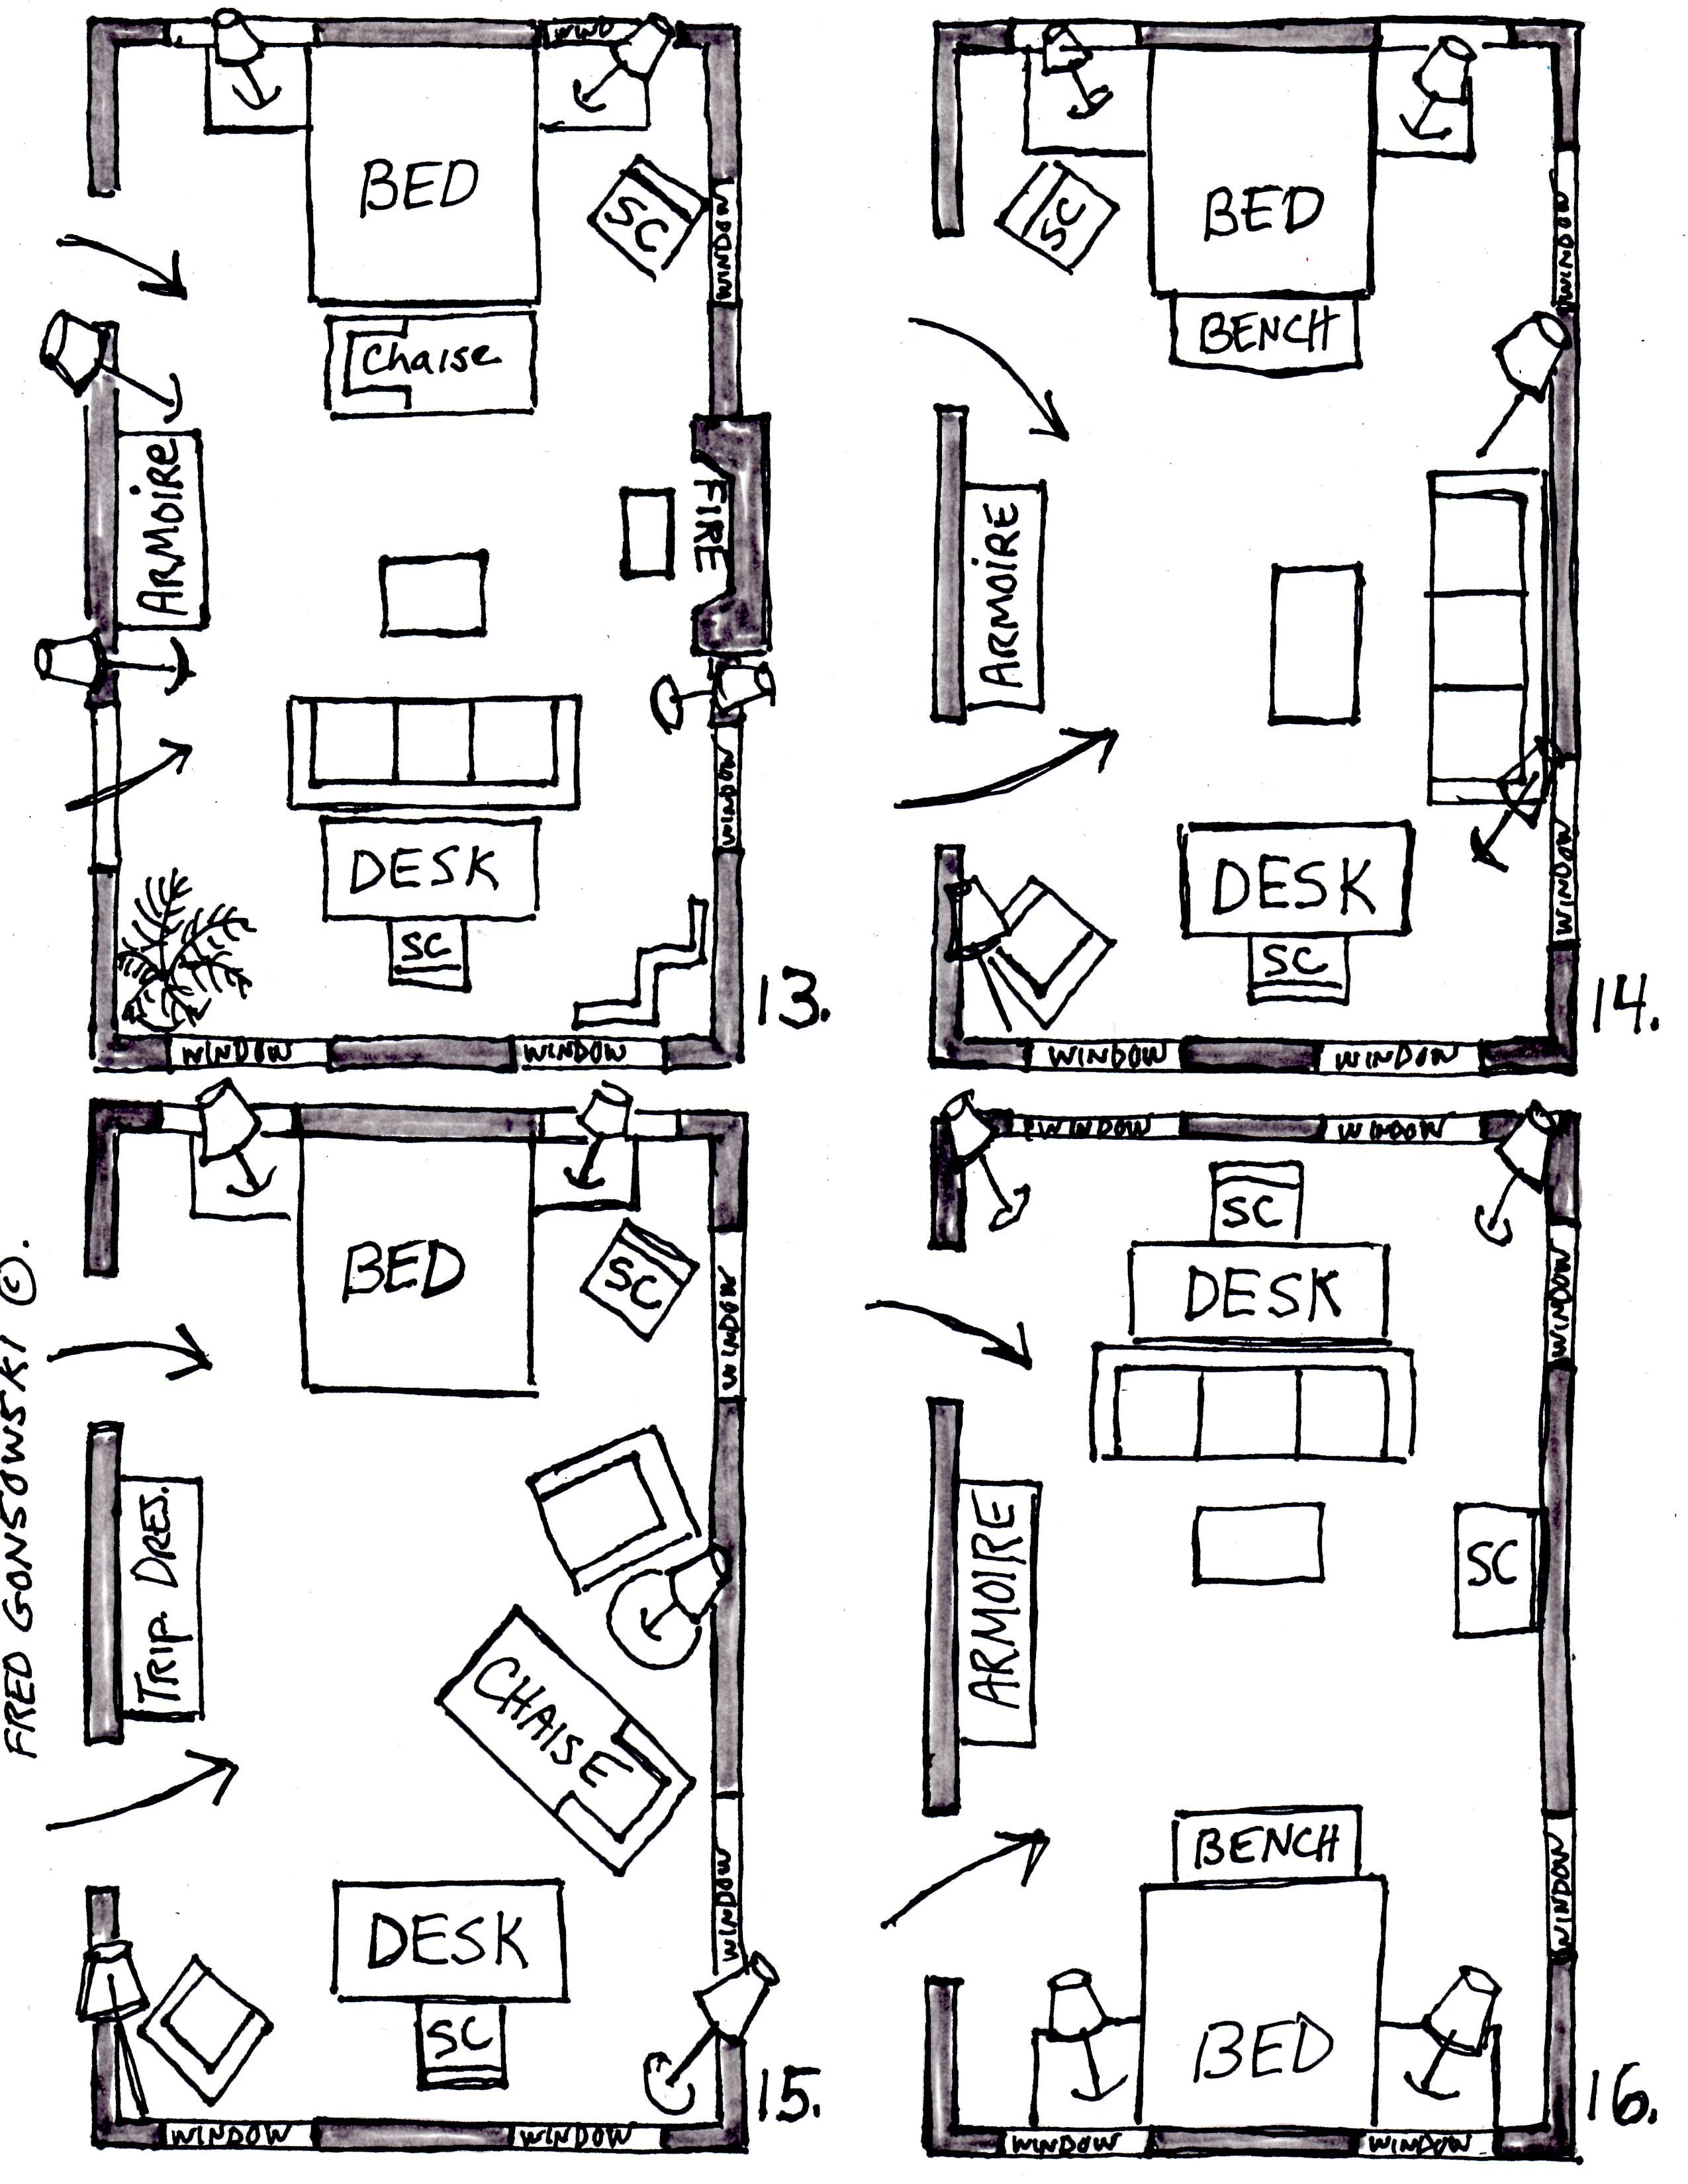 Arranging Furniture In A 15 Foot Wide By 25 Foot Long Bedroom